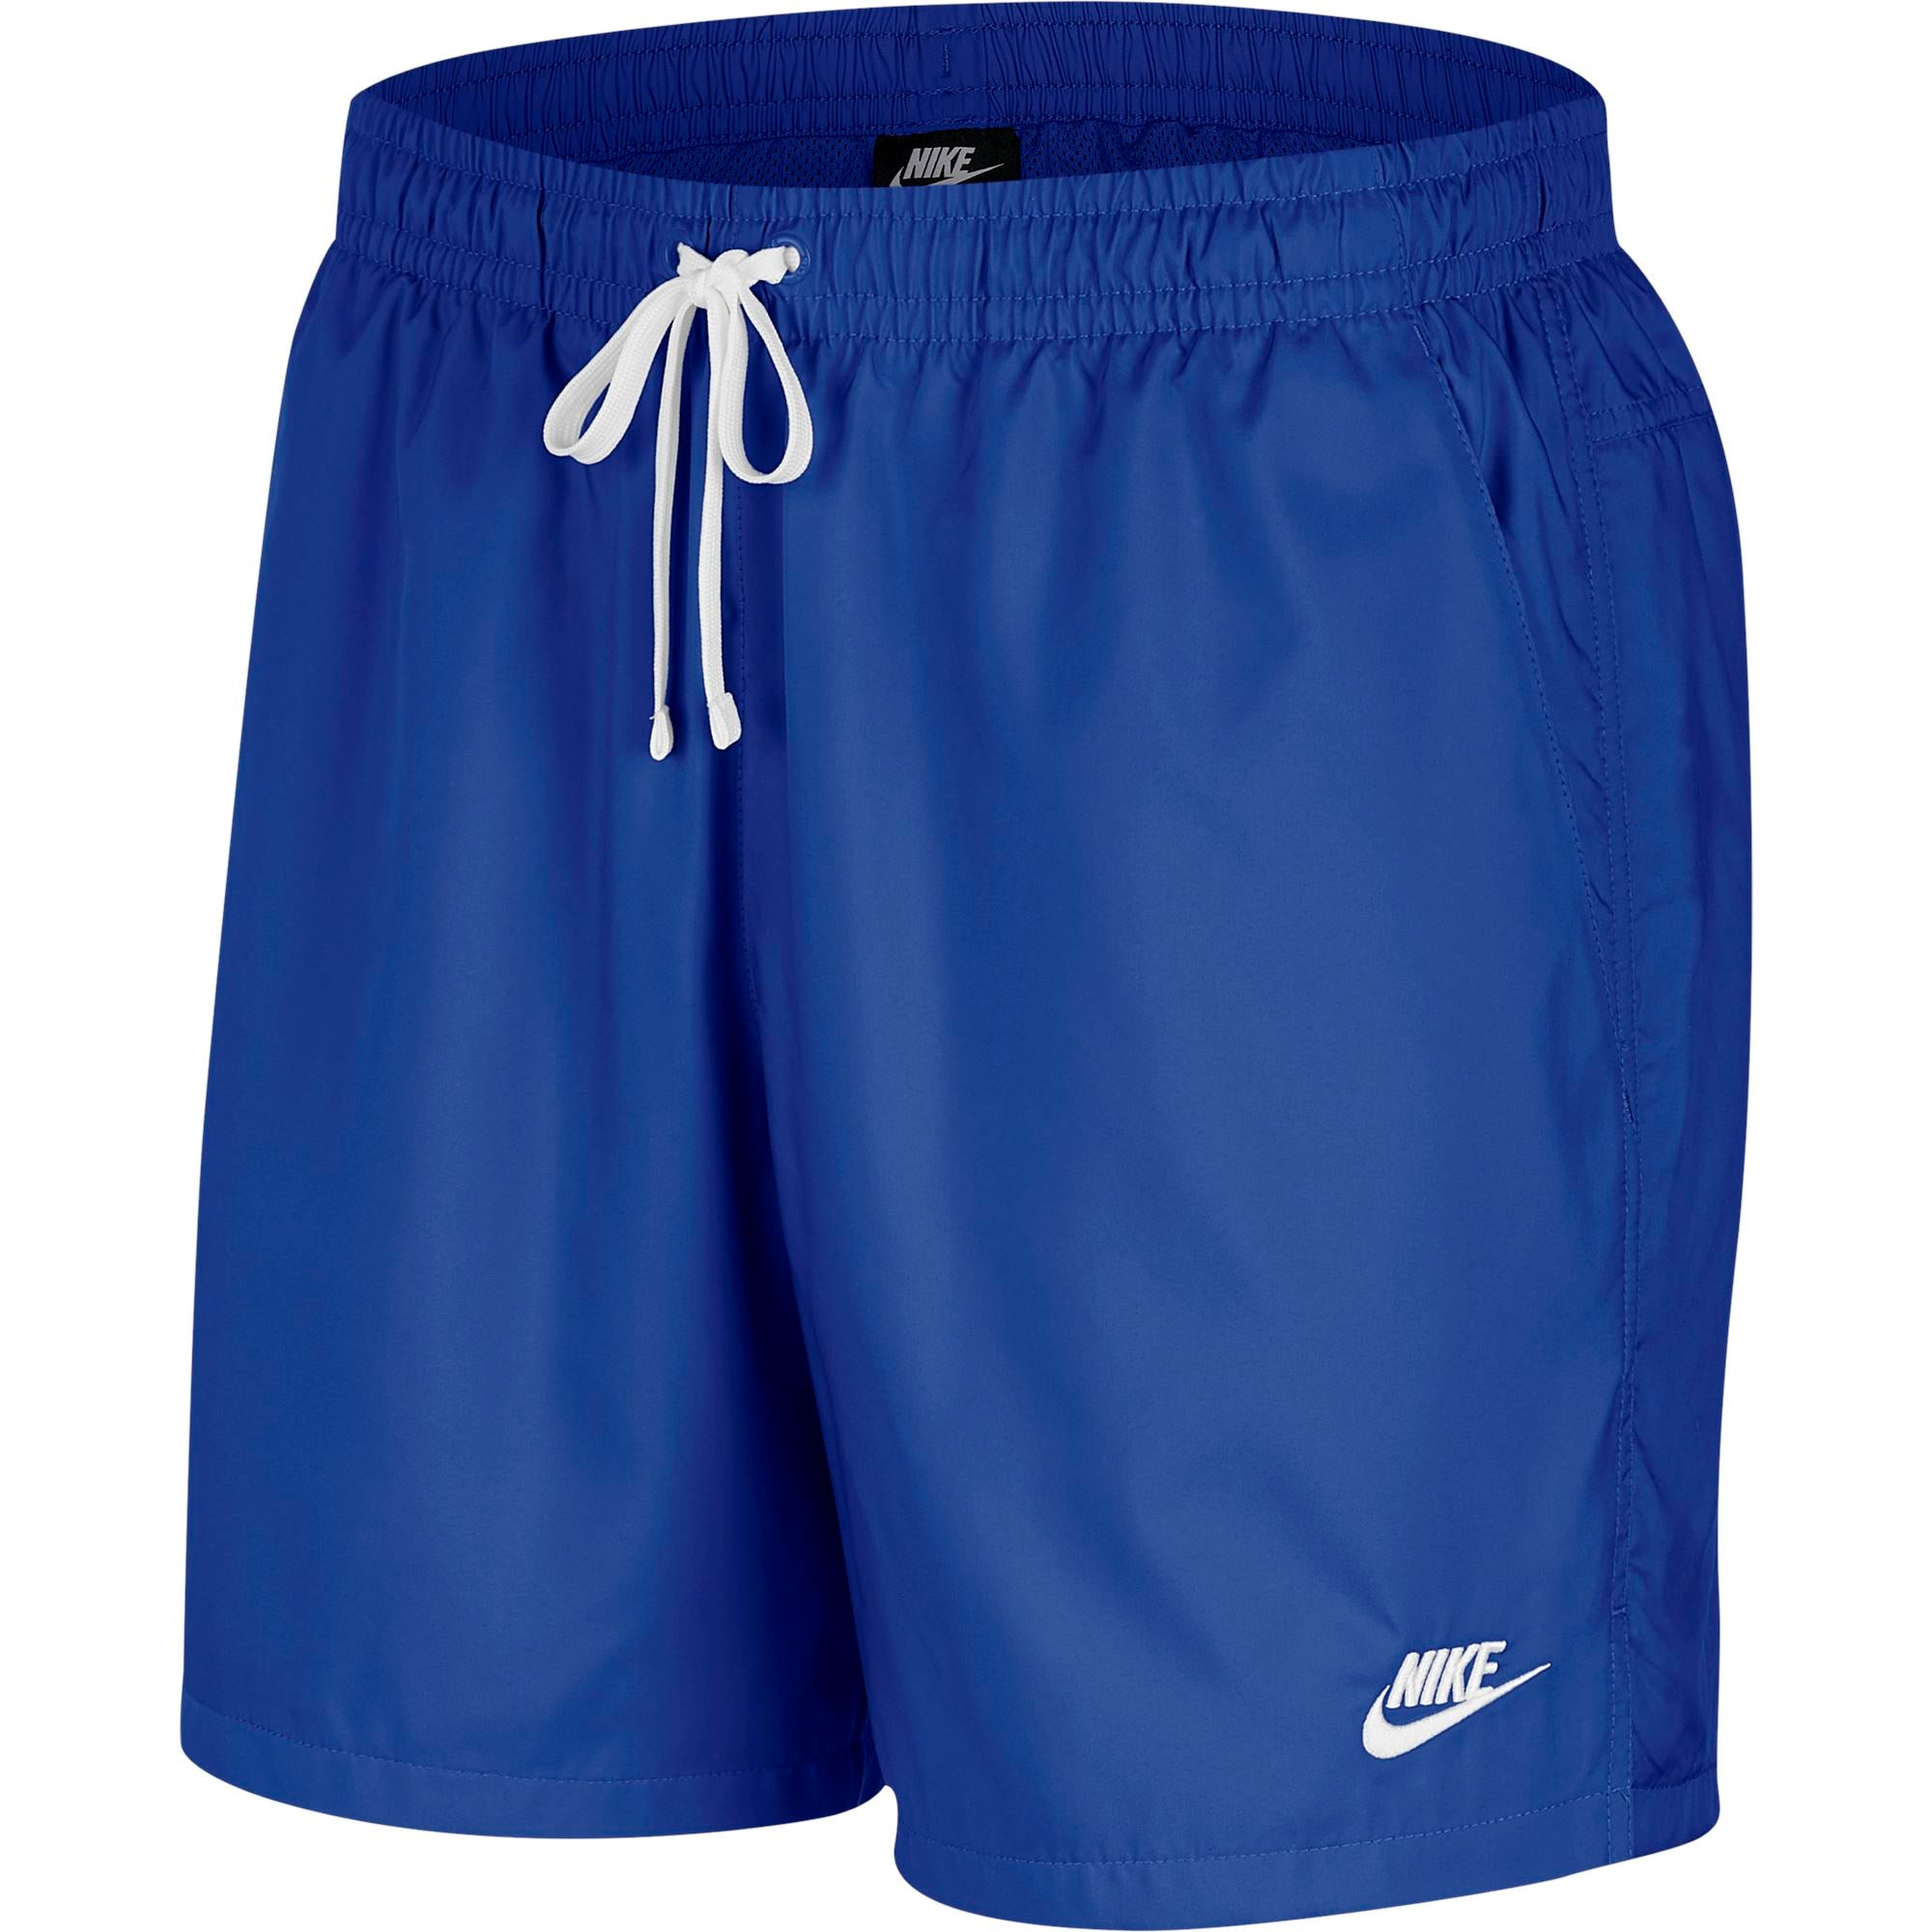 Nike Men's Sportswear Woven Flow Shorts- Astronomy Blue/White SP-ApparelShorts-Mens Nike